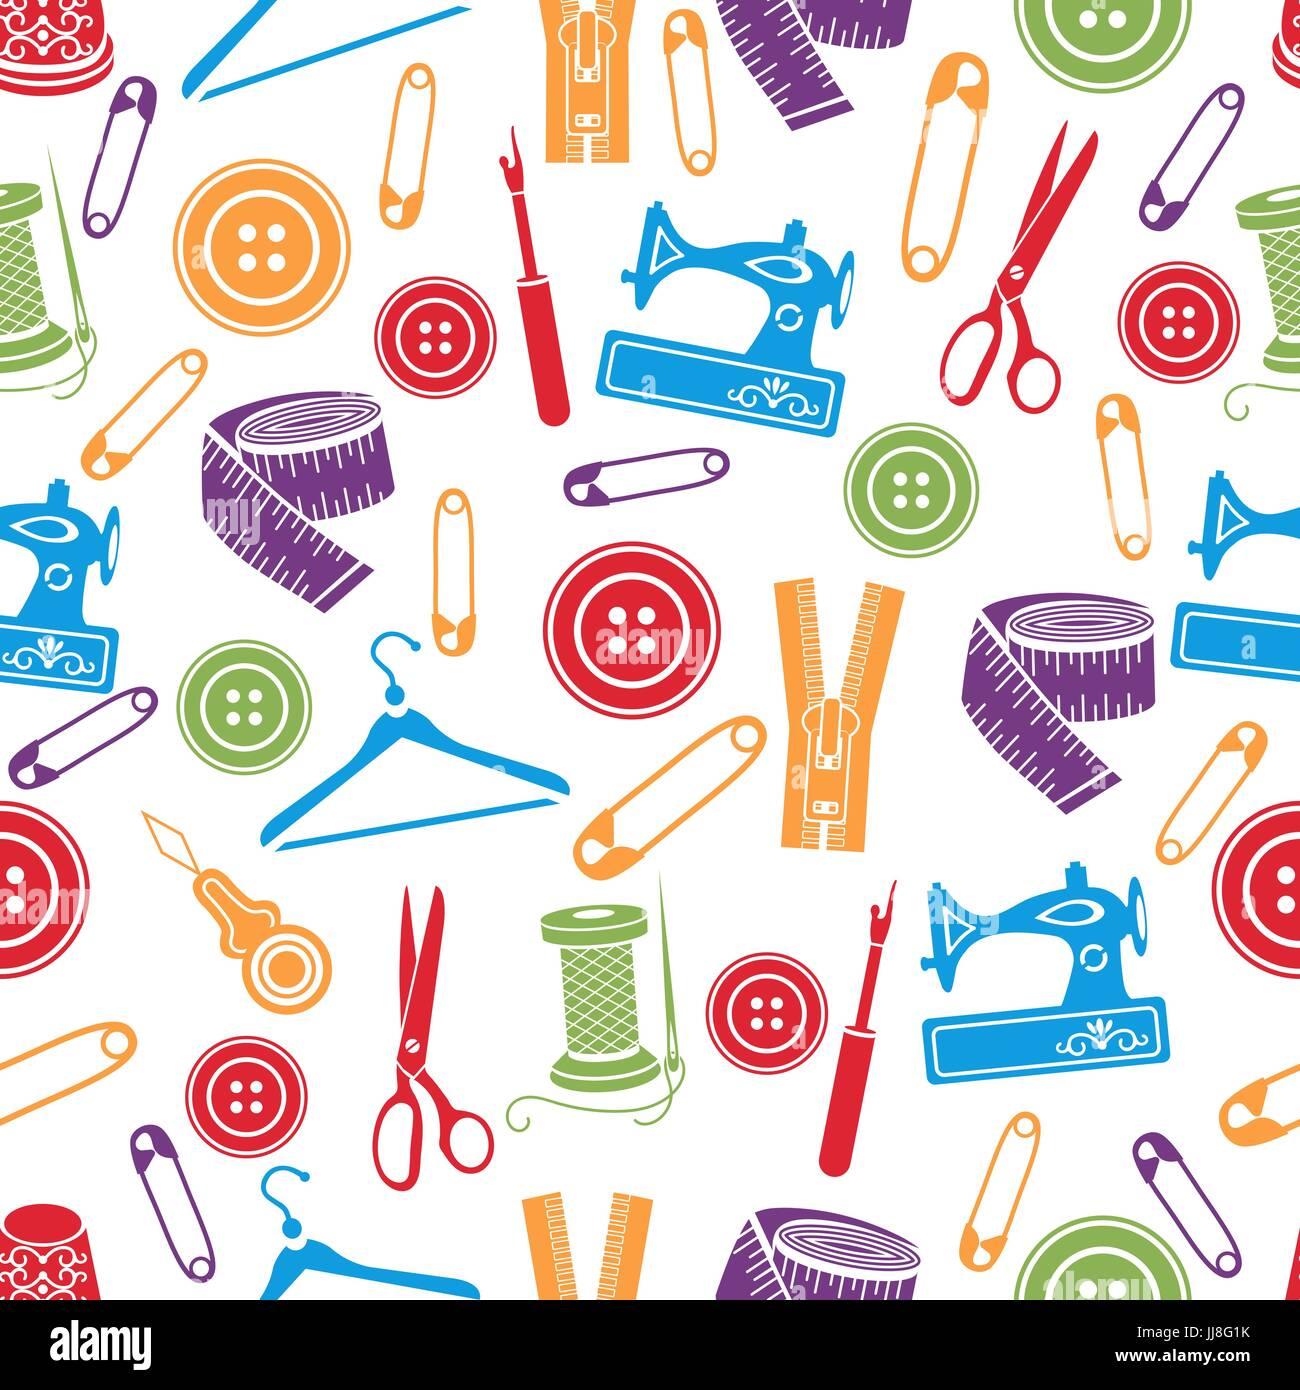 Sewing Tools Seamless Pattern Vector Background Multicolored Supplies On White For Wallpaper Design Fabric Wrapper Prints Dec